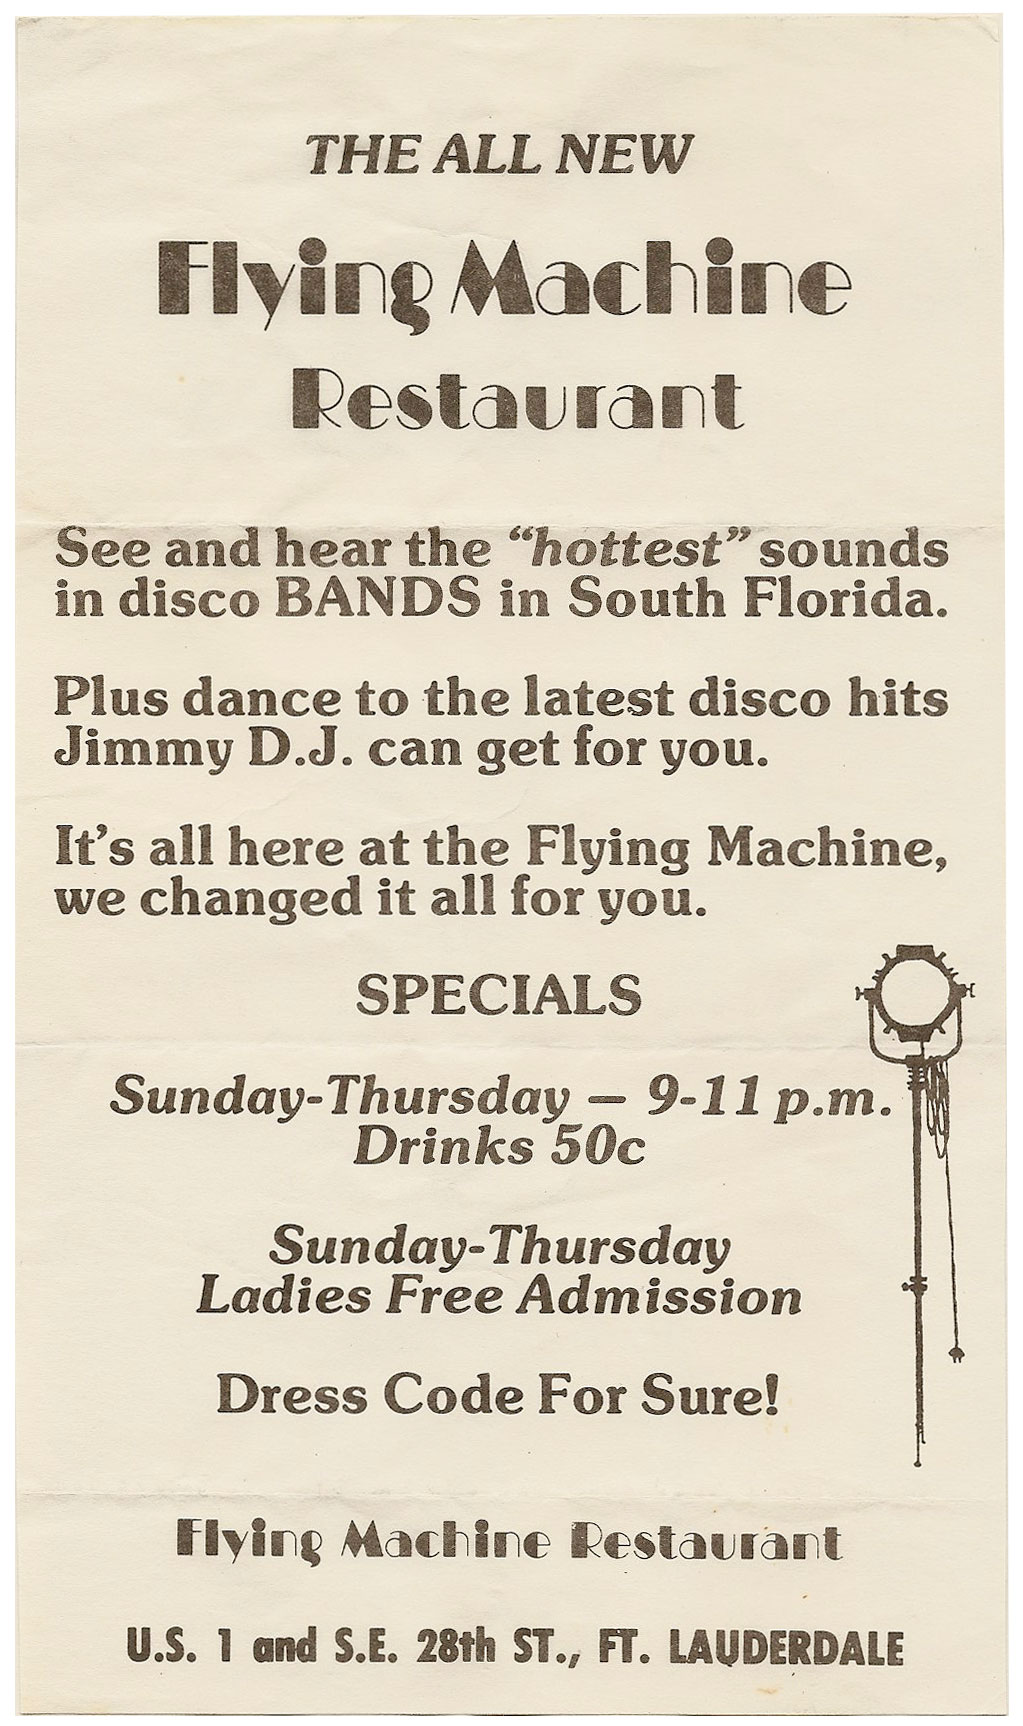 The Flying Machine menu